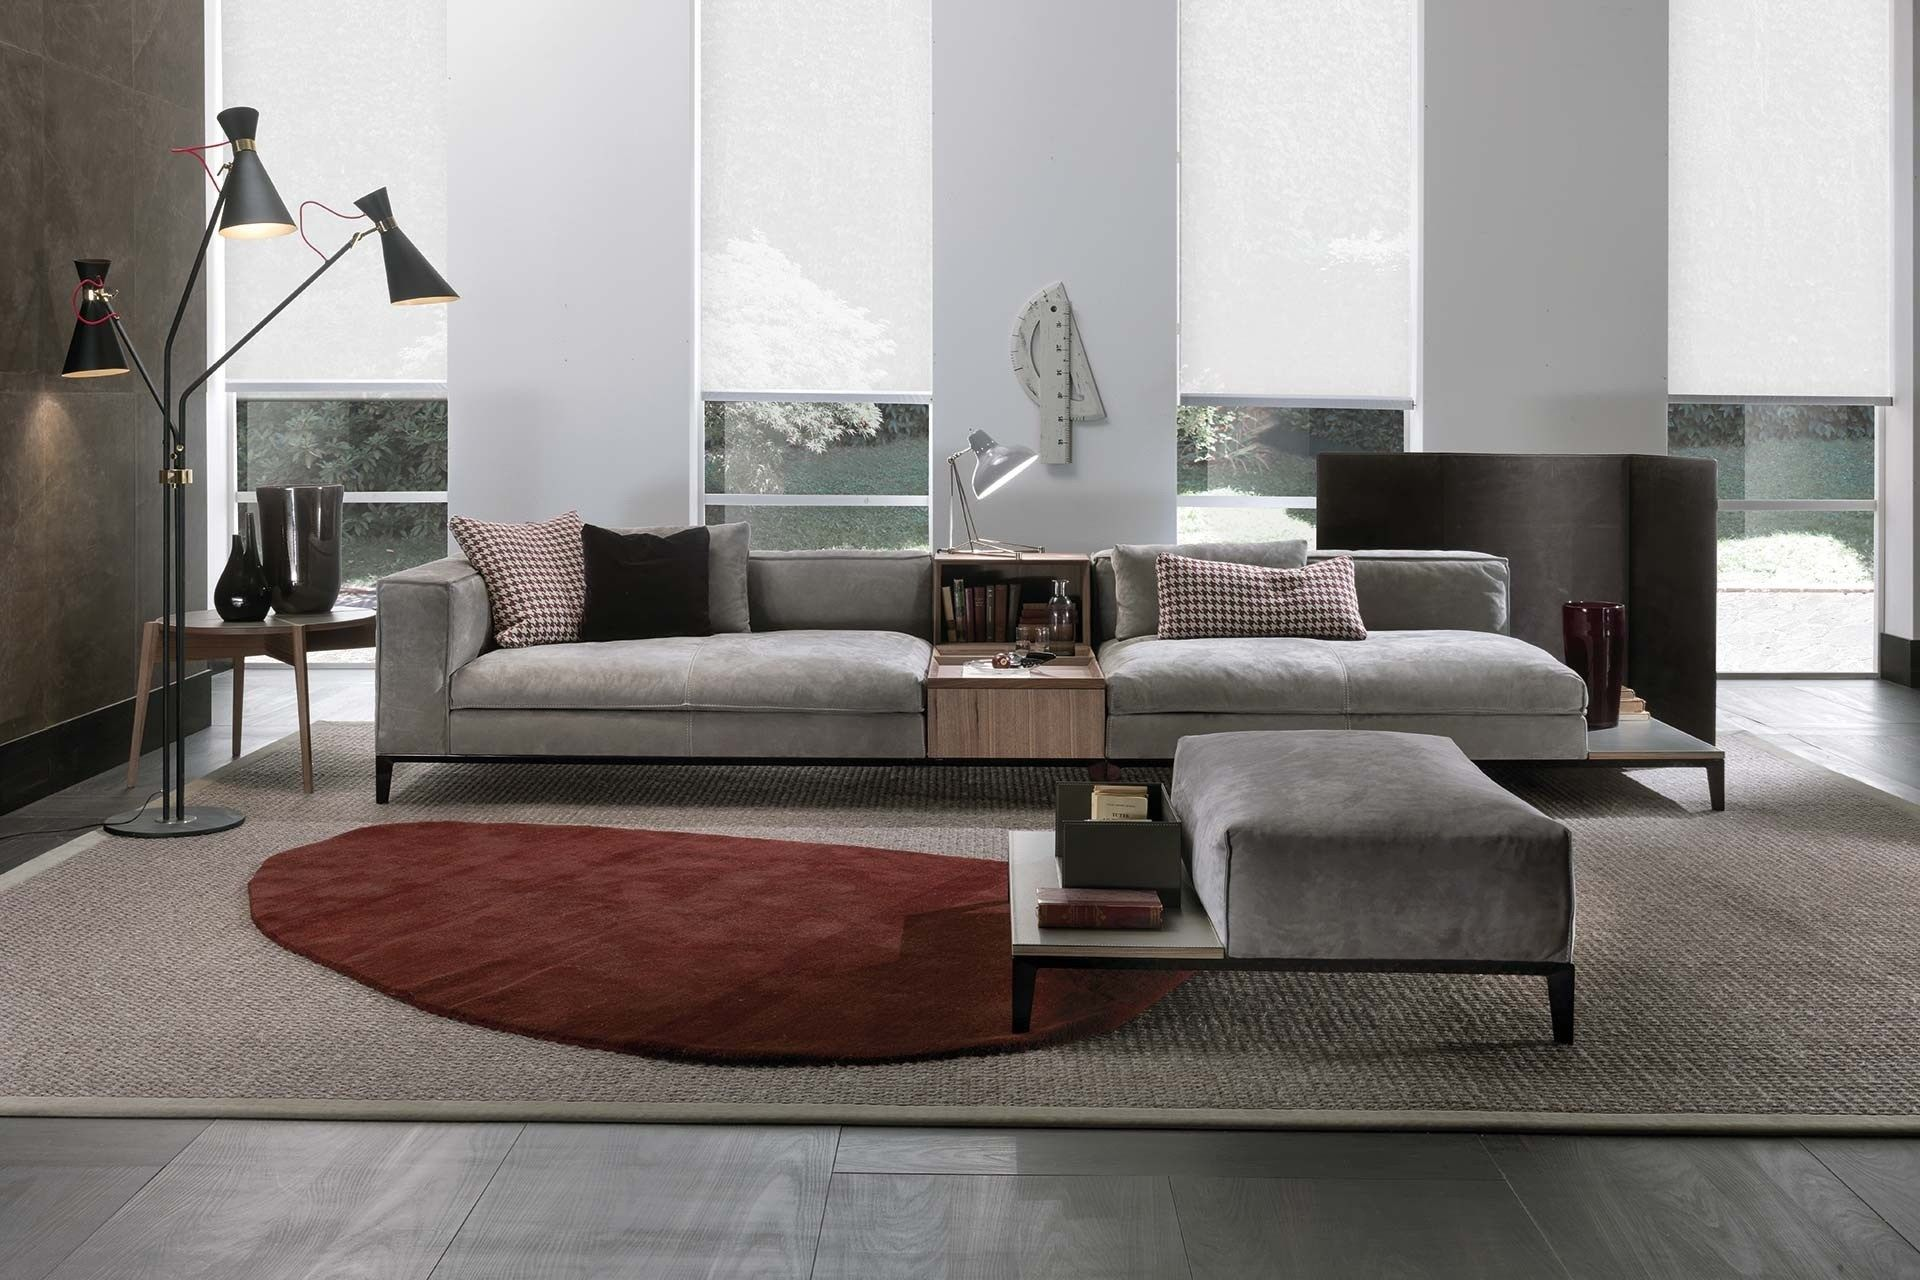 Sectional fabric sofa TAYLOR Sectional sofa FRIGERIO